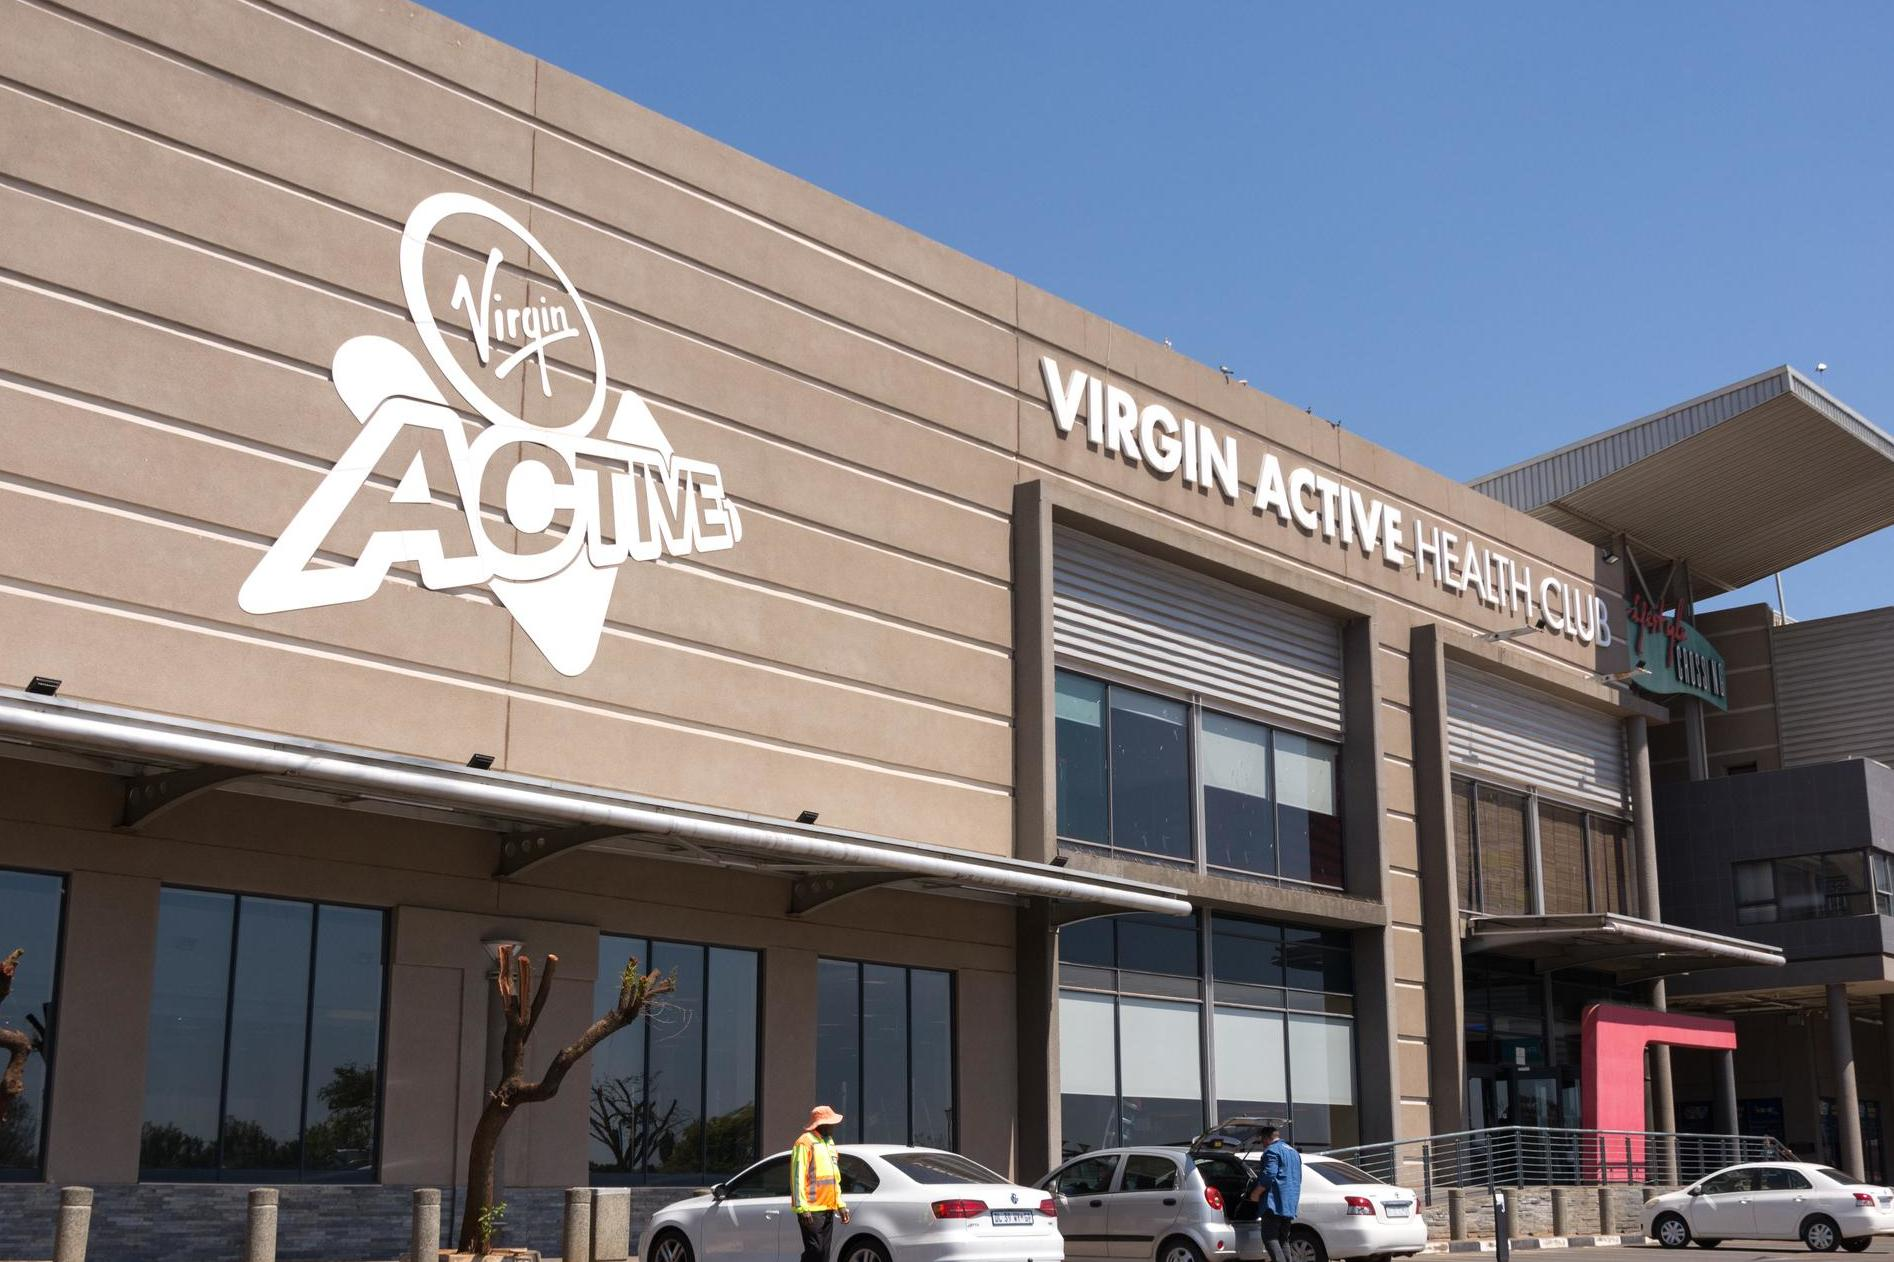 Virgin Active removes 'Thigh Gap' meal from gyms after name sparks outrage on social media